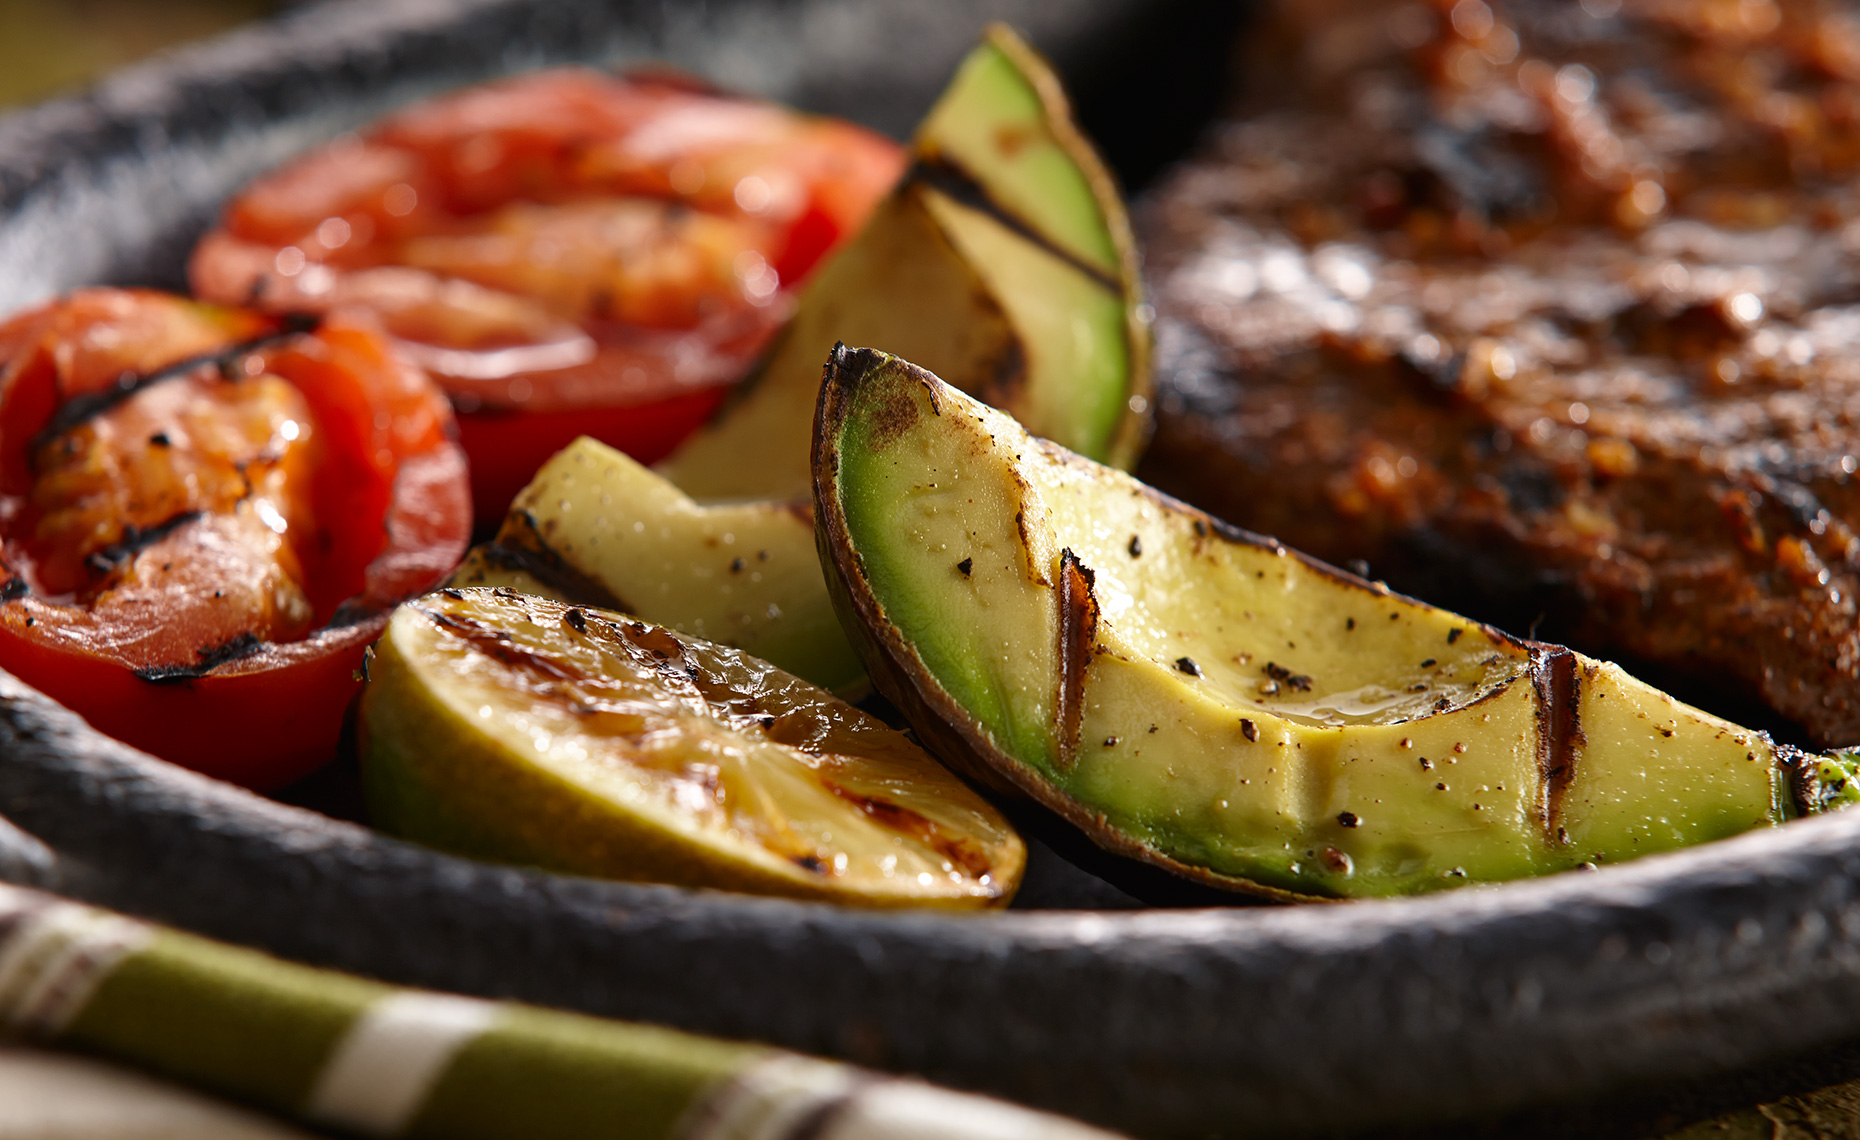 Food Photographer, Meat Photographer, Steak Photography | Pohuski Studios,  Avocado Grilled